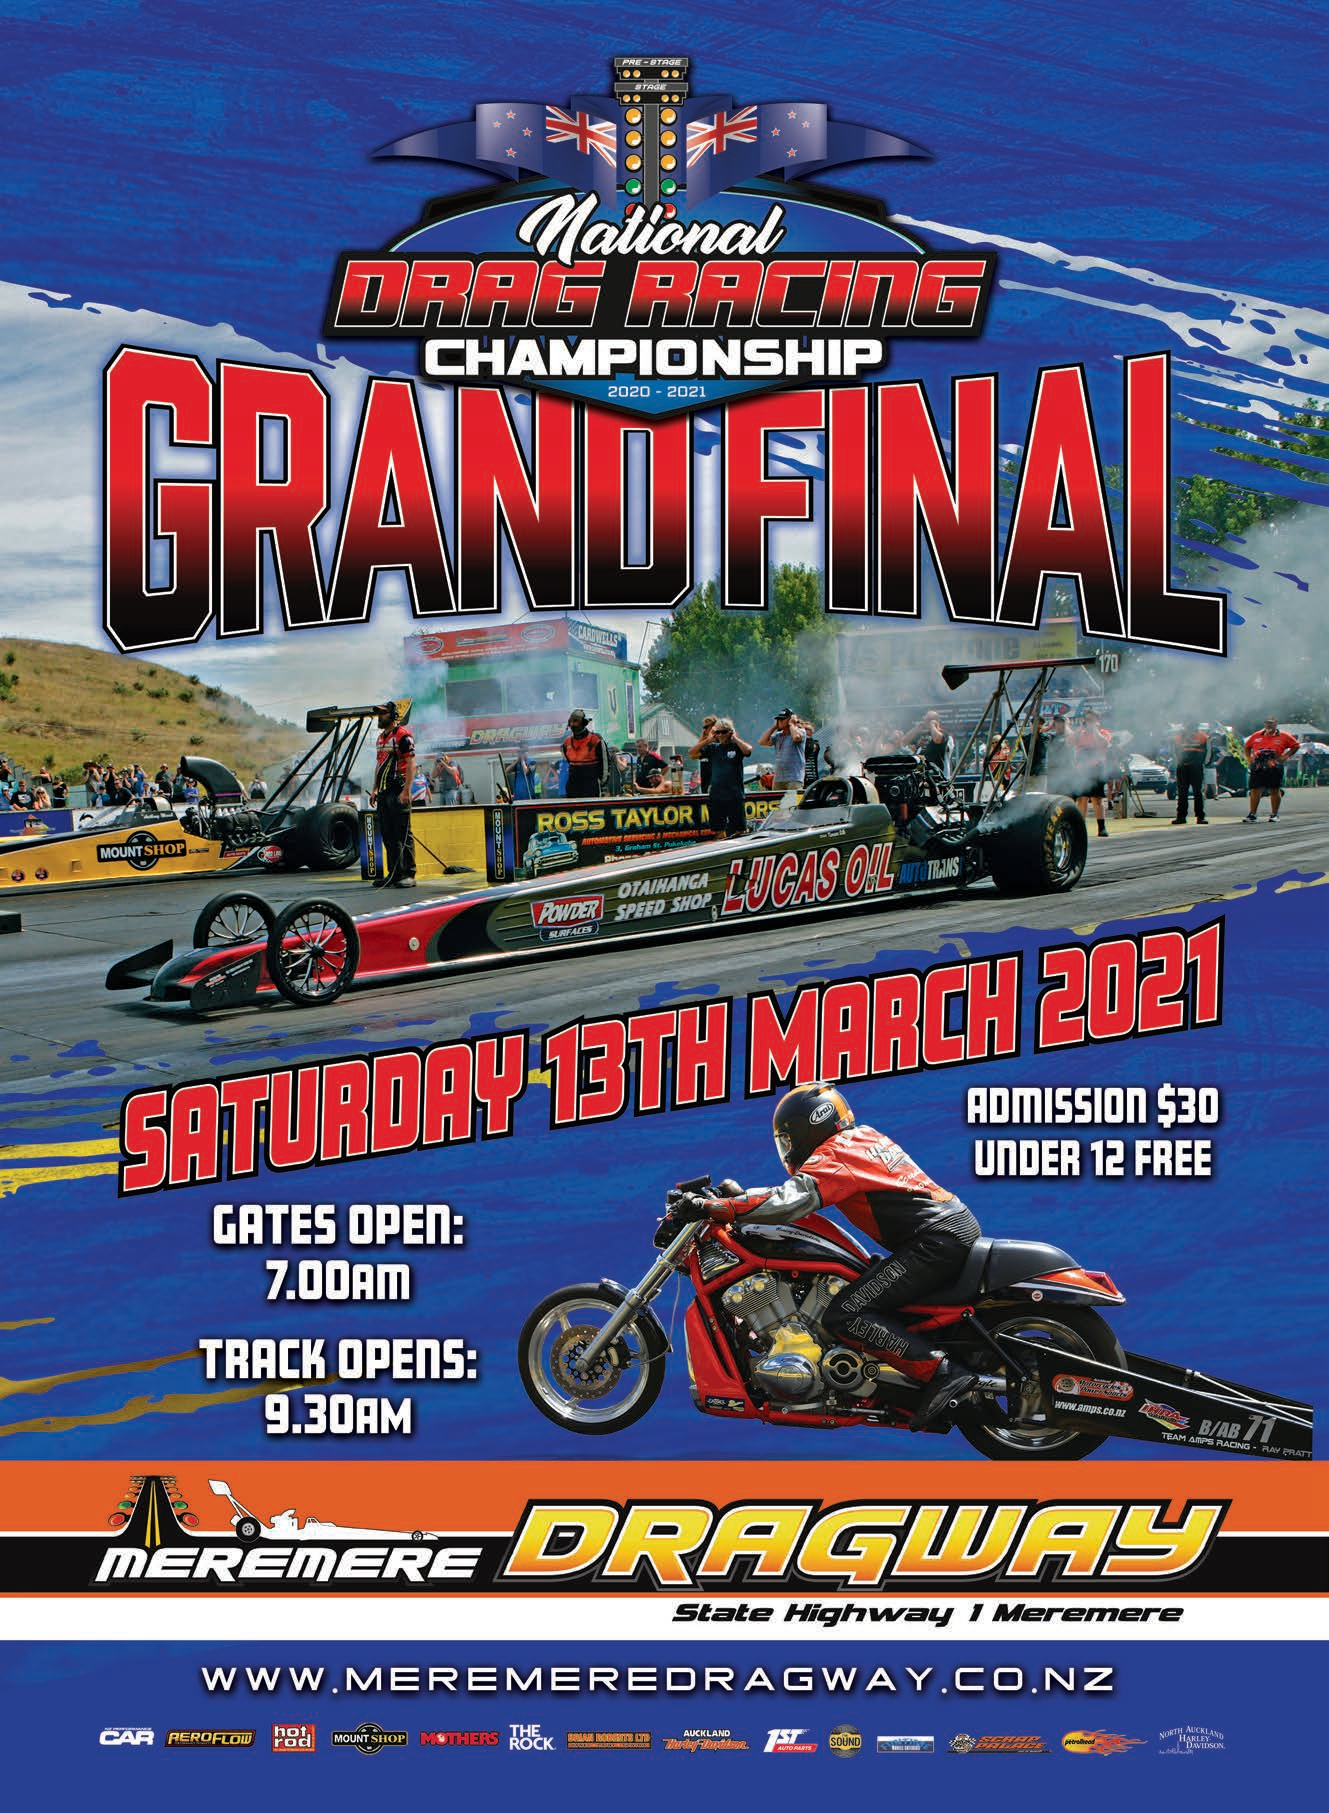 2020/21 National Drag Racing Championship. Round 9. Meremere Dragway. Auckland. 13 March, 2021.